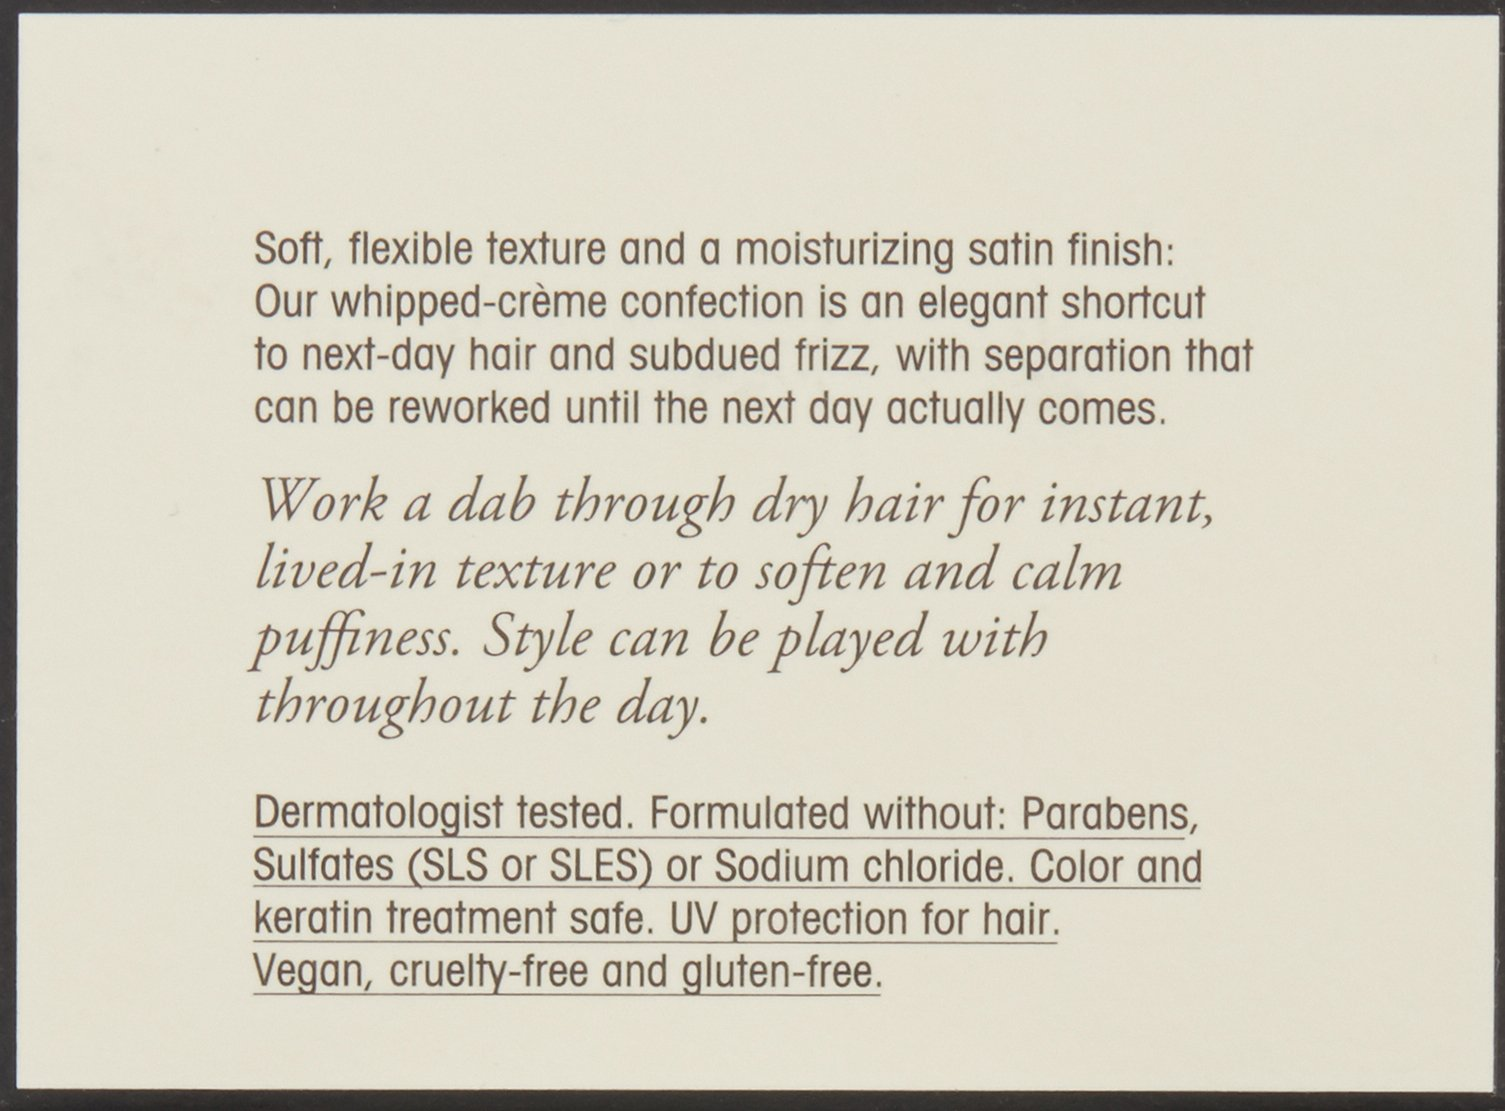 ORIBE Airstyle Flexible Finish Cream, 1.7 oz